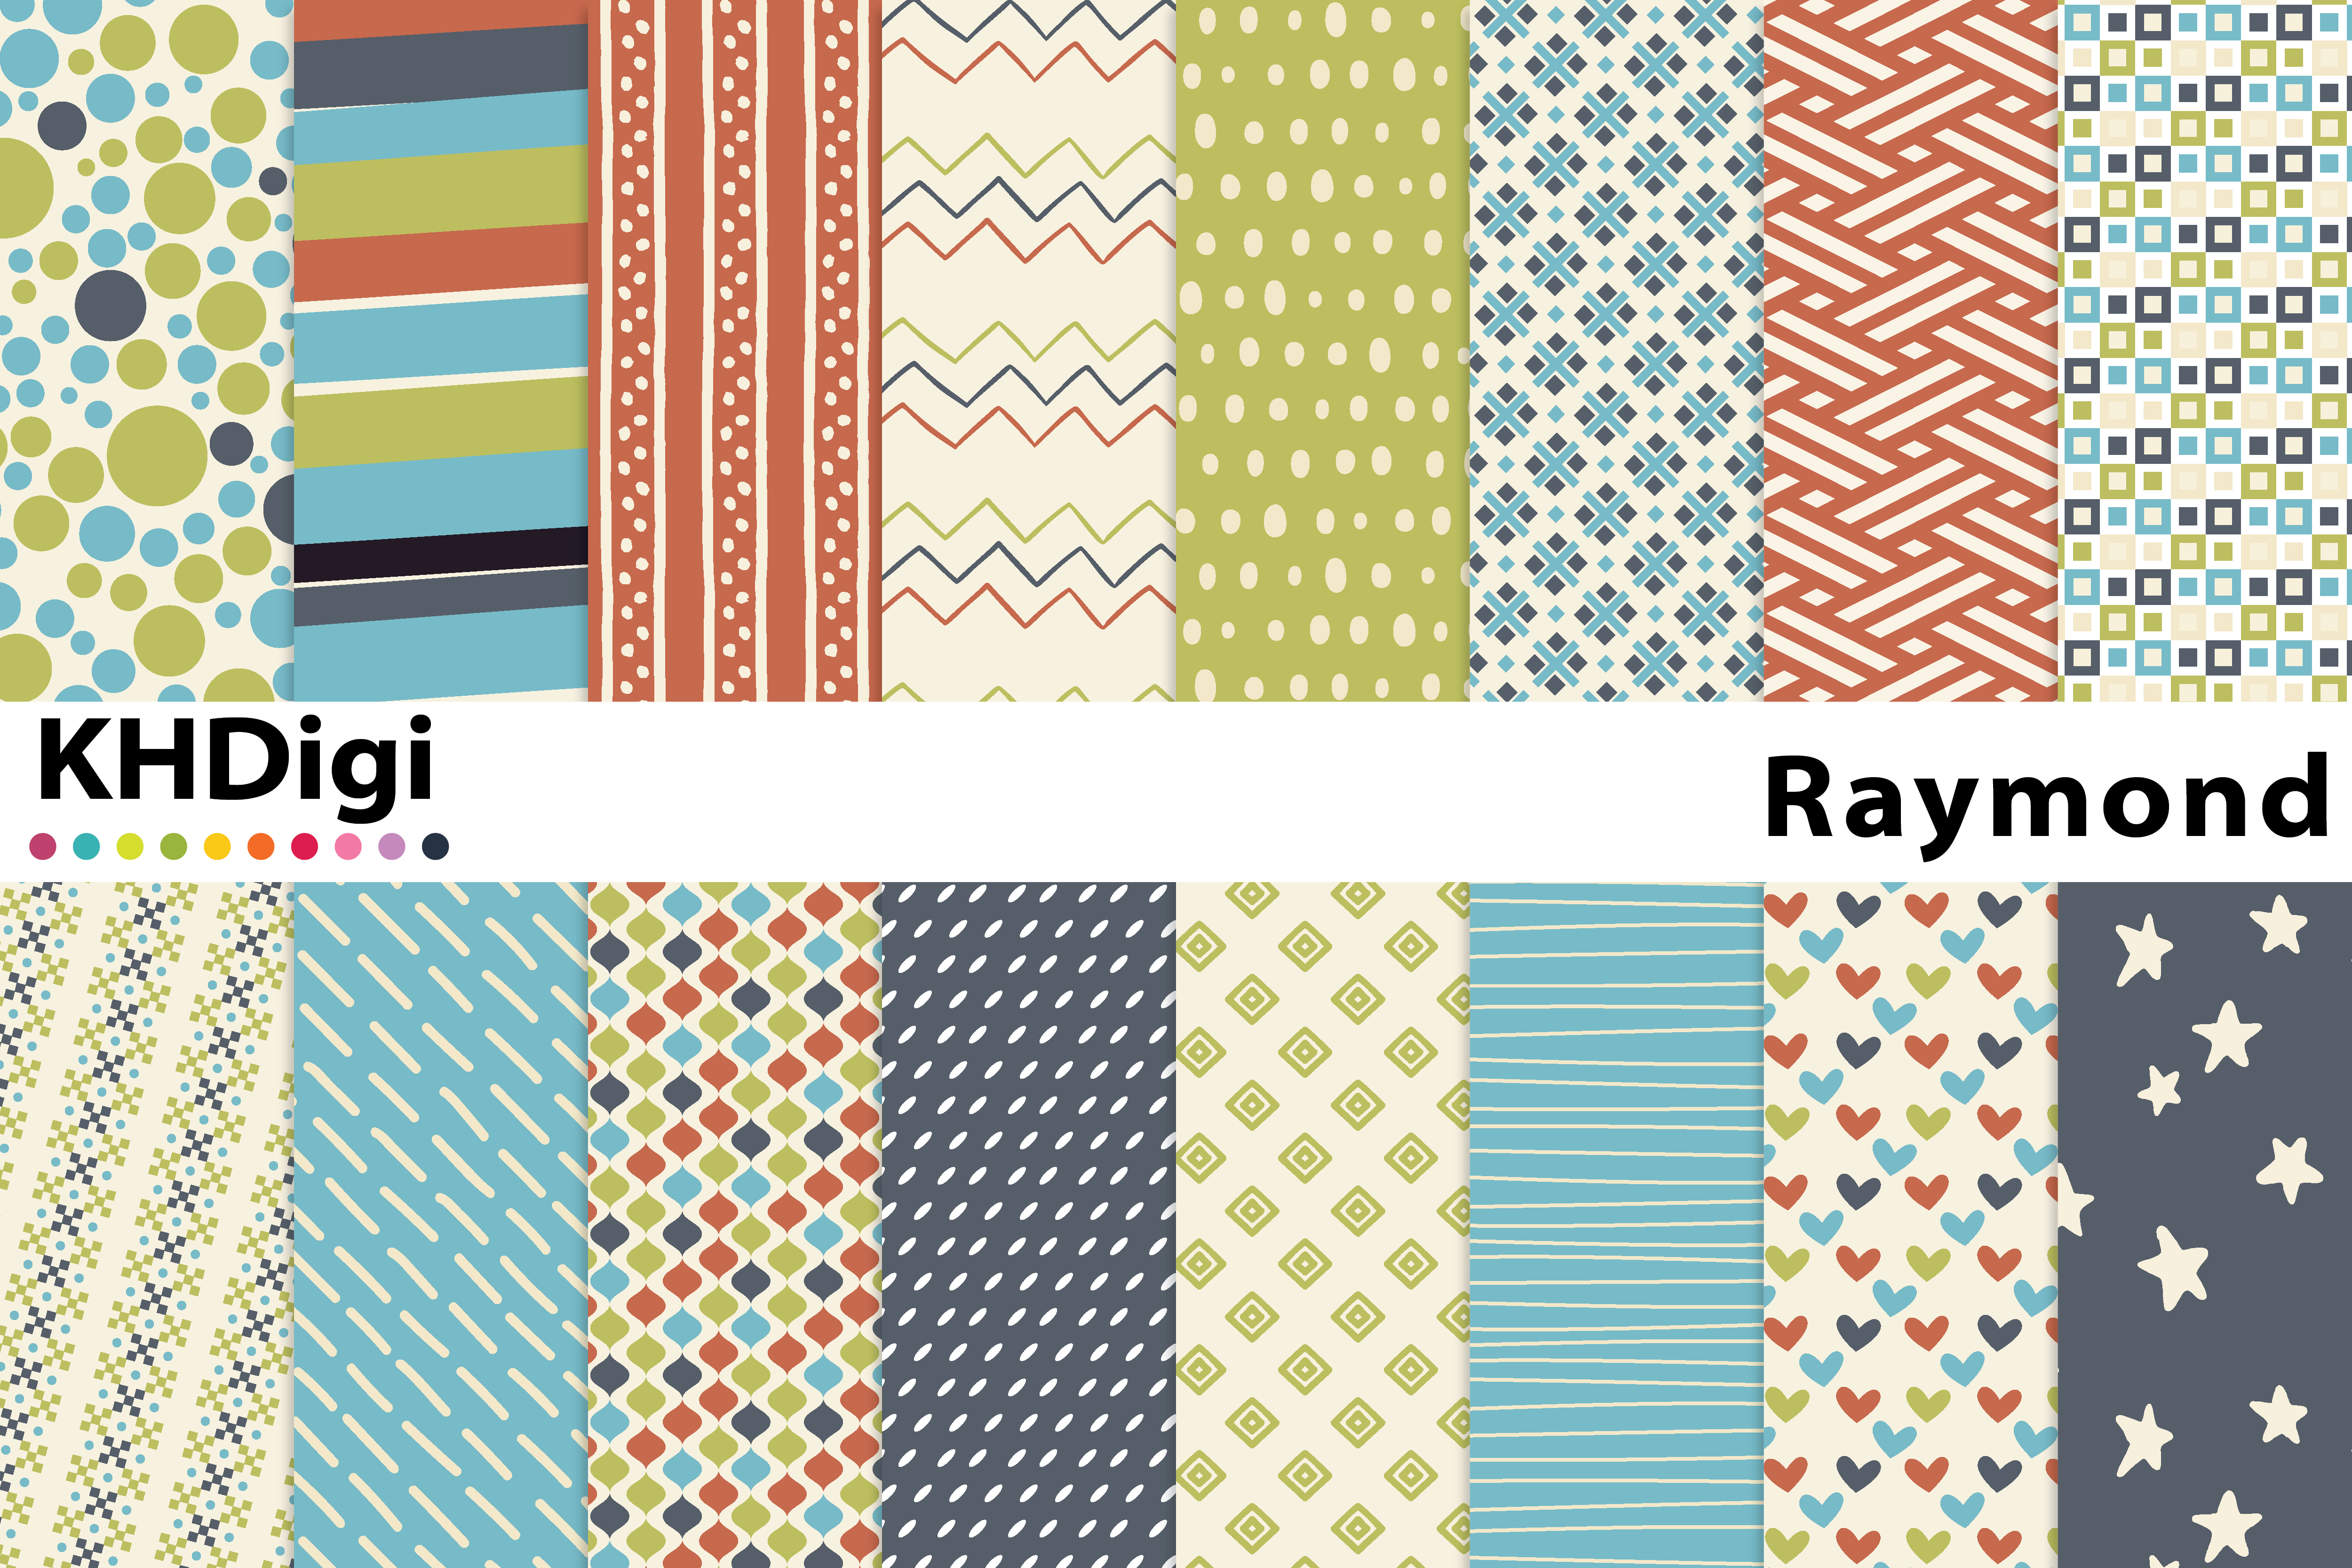 Download Free Raymond Digital Paper Graphic By Khdigi Creative Fabrica for Cricut Explore, Silhouette and other cutting machines.